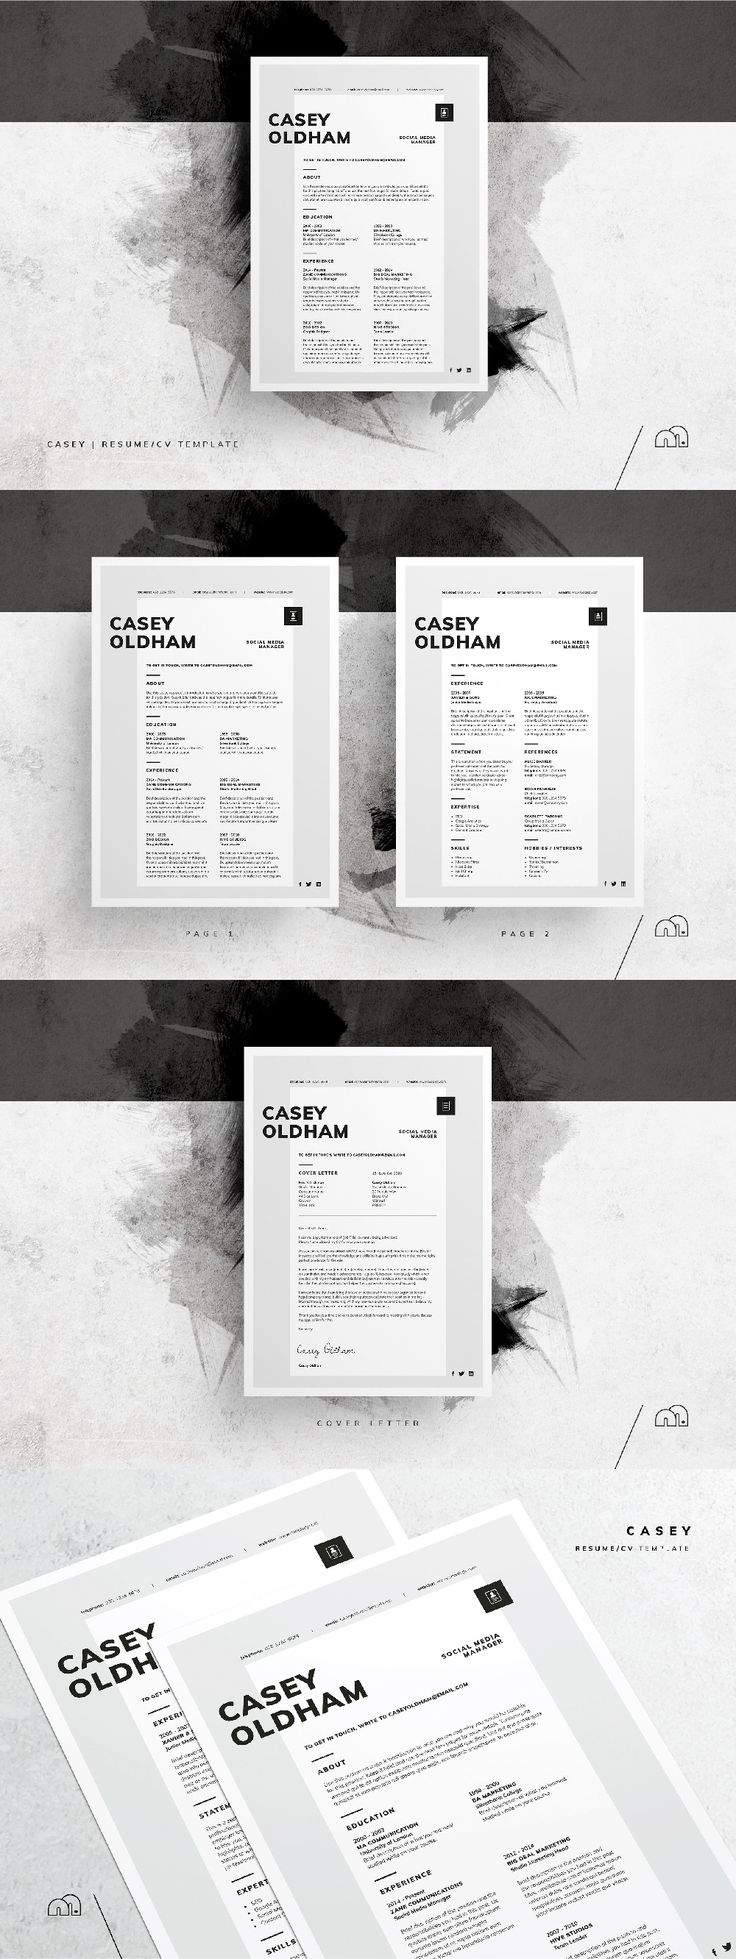 receptionist sample resume%0A Resume   CV Template  Casey For those looking for a professional template    u    Casey